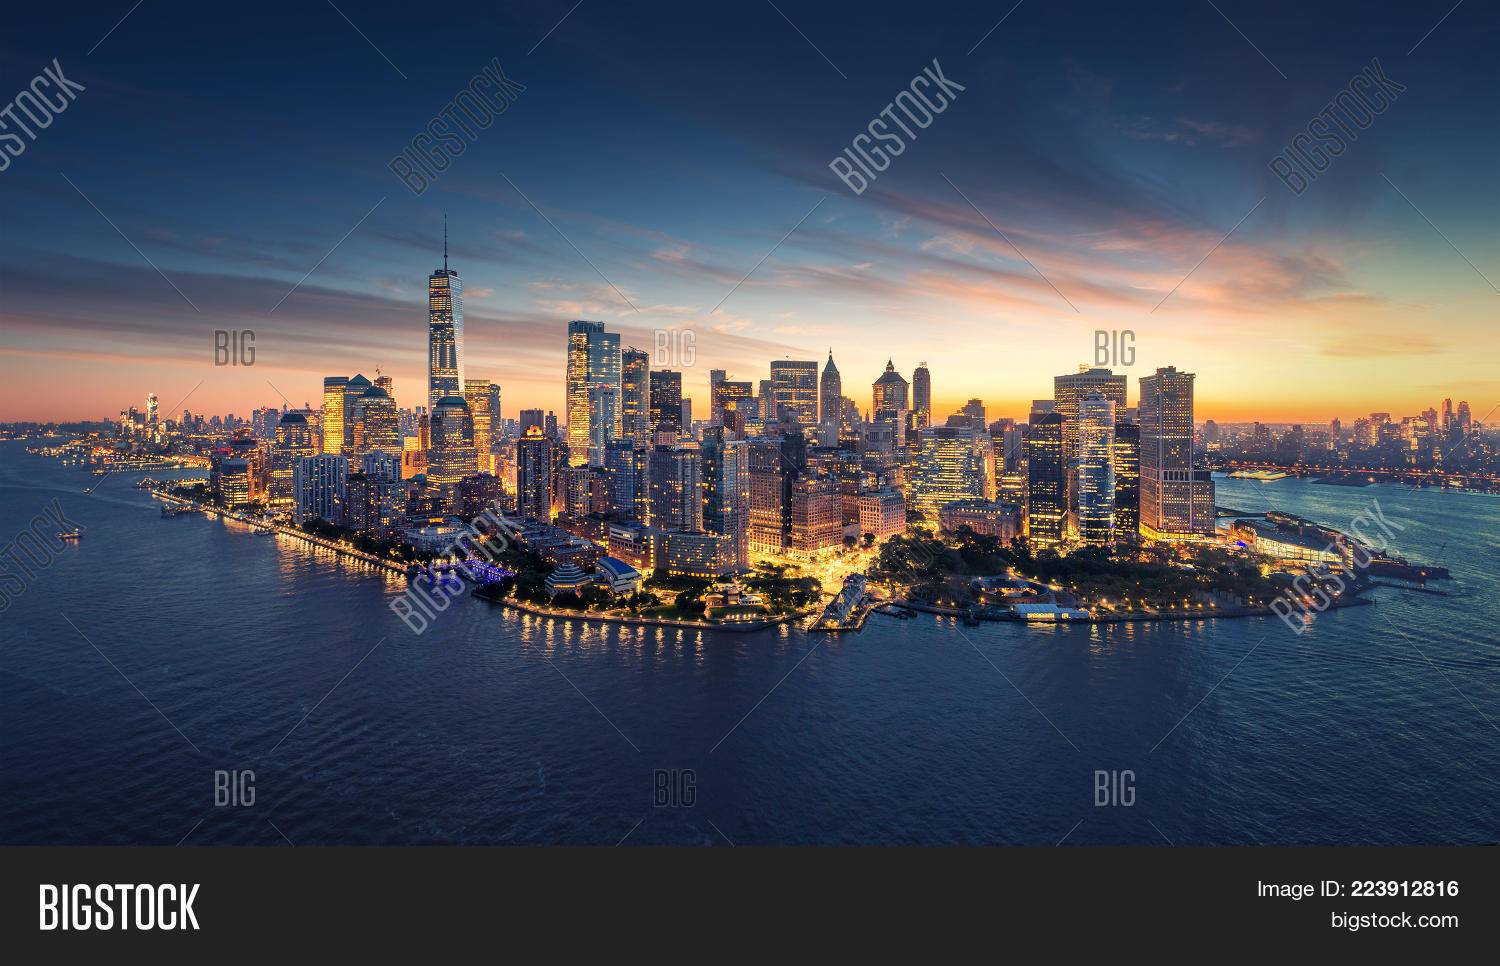 aerial,america,american,apartment,architecture,background,building,business,city,cityscape,downtown,dusk,east,east river,empire,exterior,high,hudson river,landmark,manhattan,new york,new york city,new york panorama,new york skyline,night,ny,nyc,office,outdoors,panorama,panoramic,river,scene,sky,skyline,skyscraper,skyscrapers,street,sunrise,sunset,tourism,tower,twilight,urban,usa,view,wide